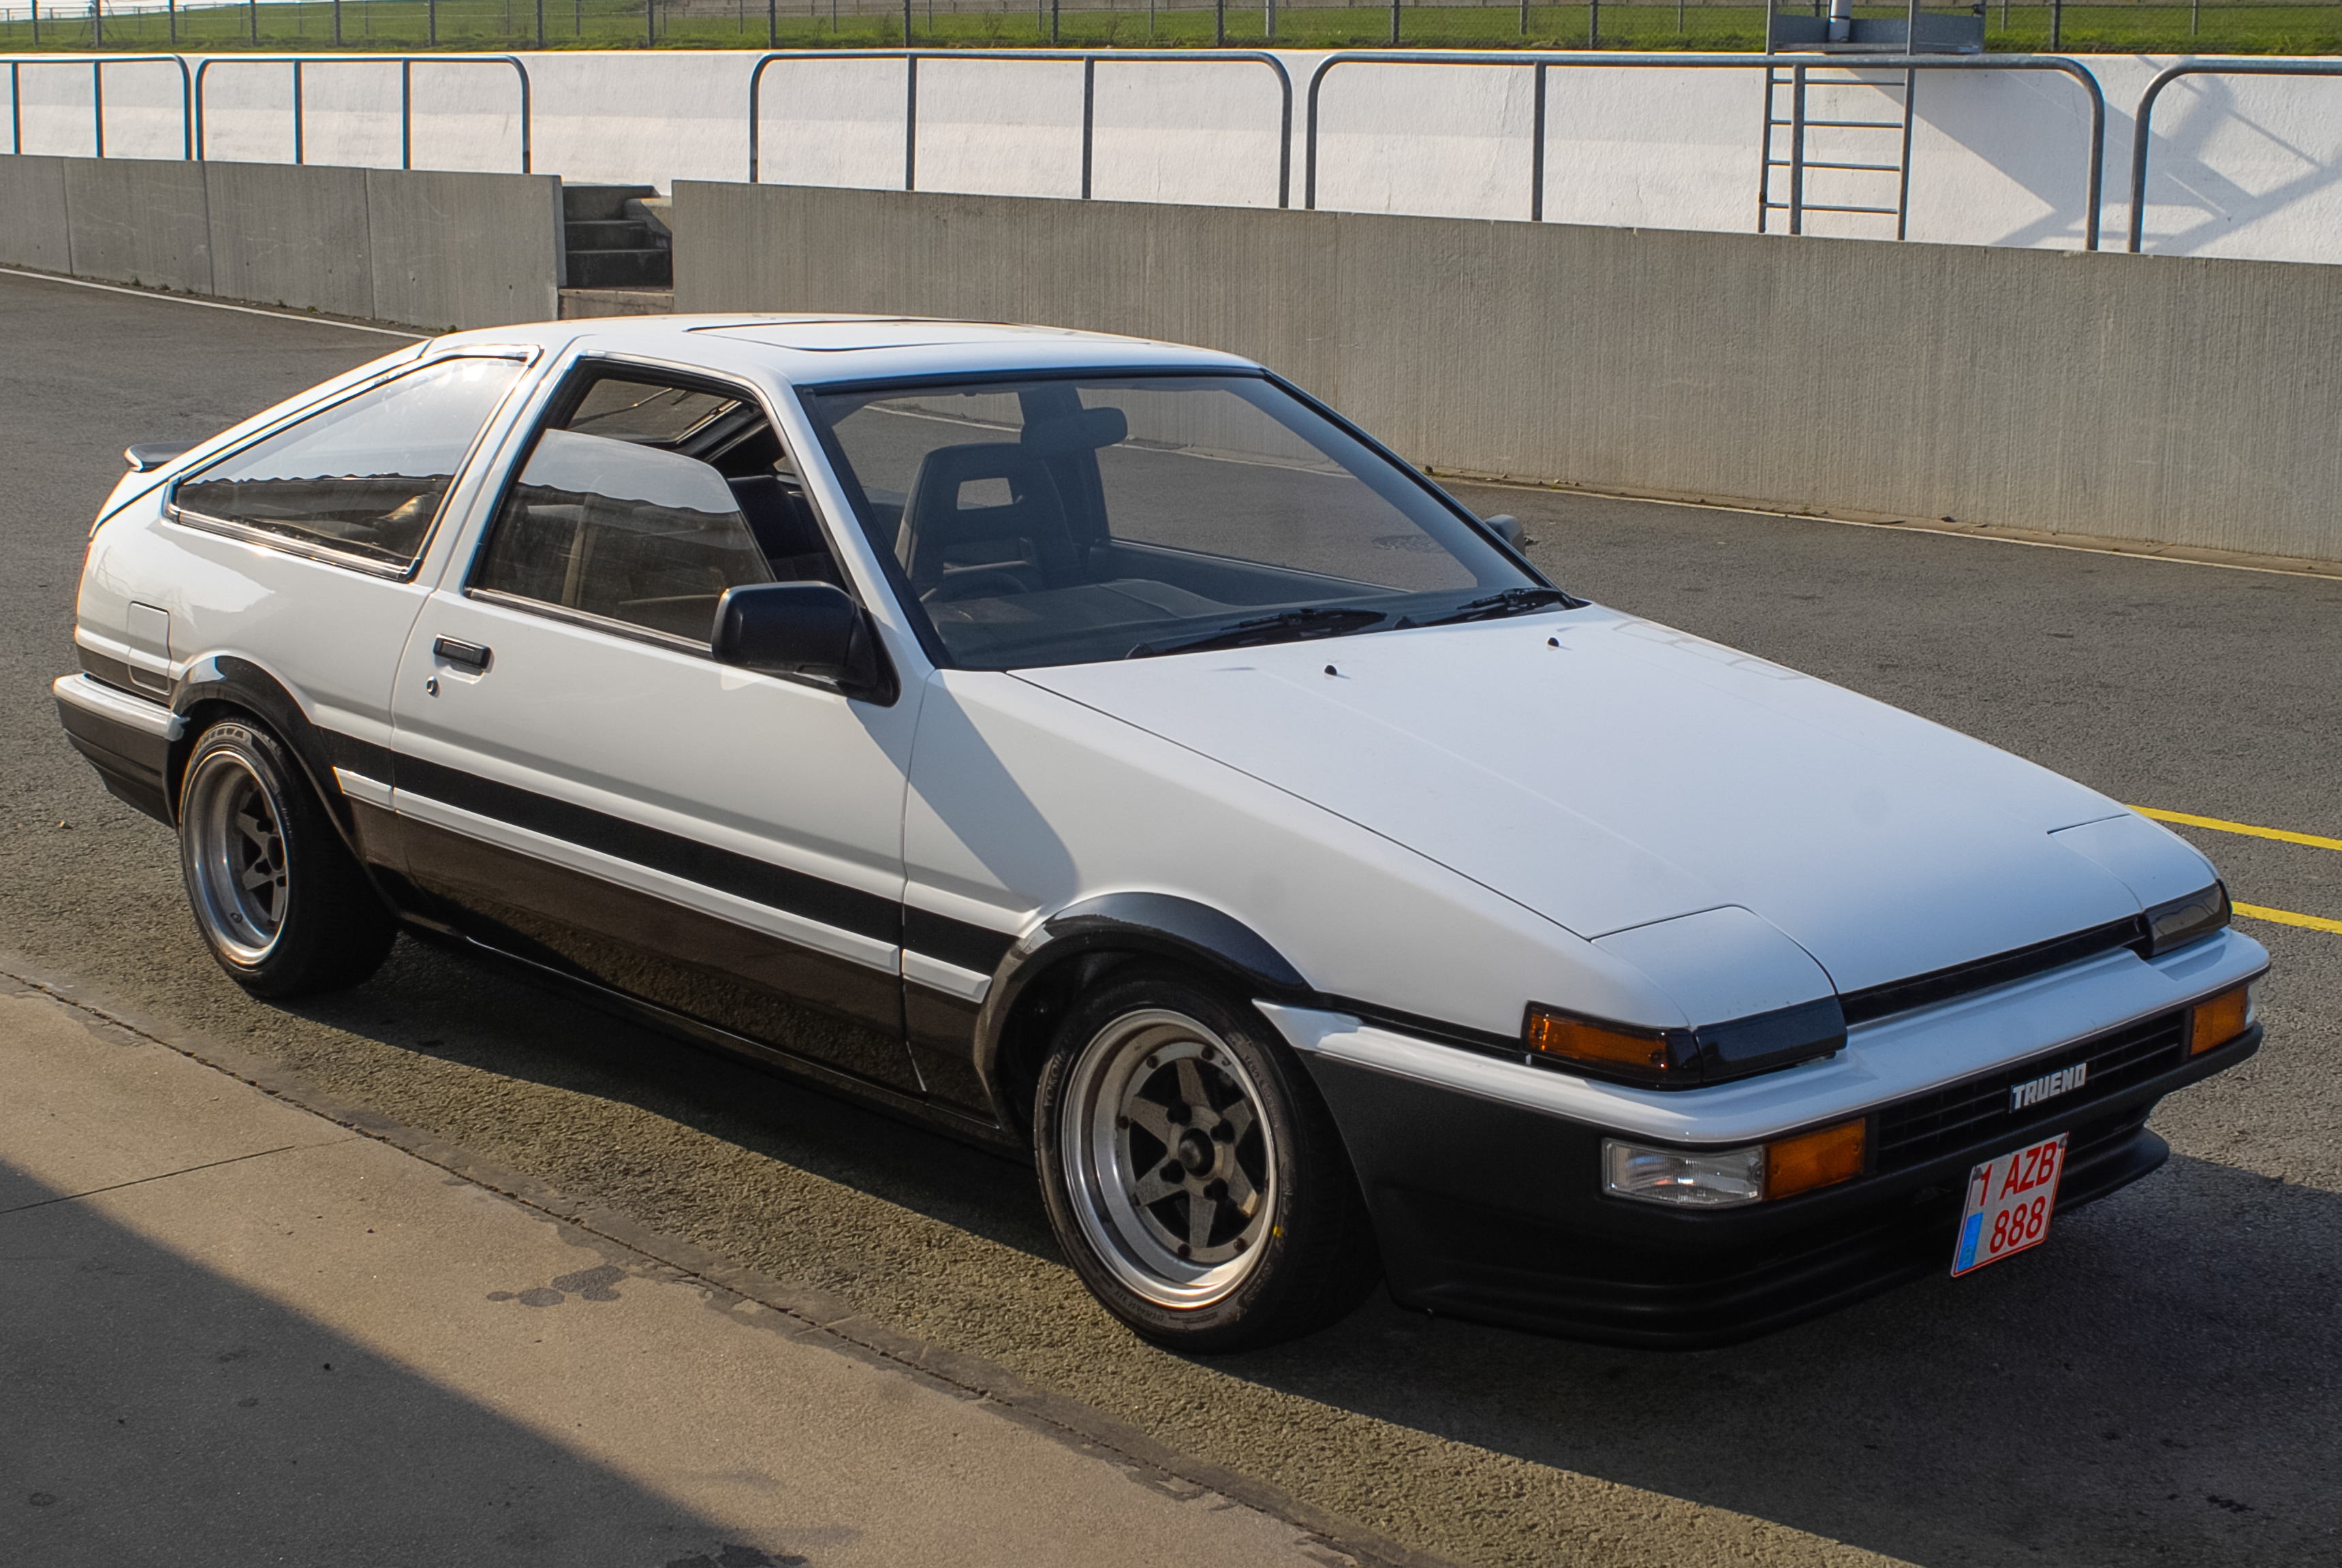 Toyota Ae86 Wallpapers Vehicles Hq Toyota Ae86 Pictures 4k Wallpapers 2019